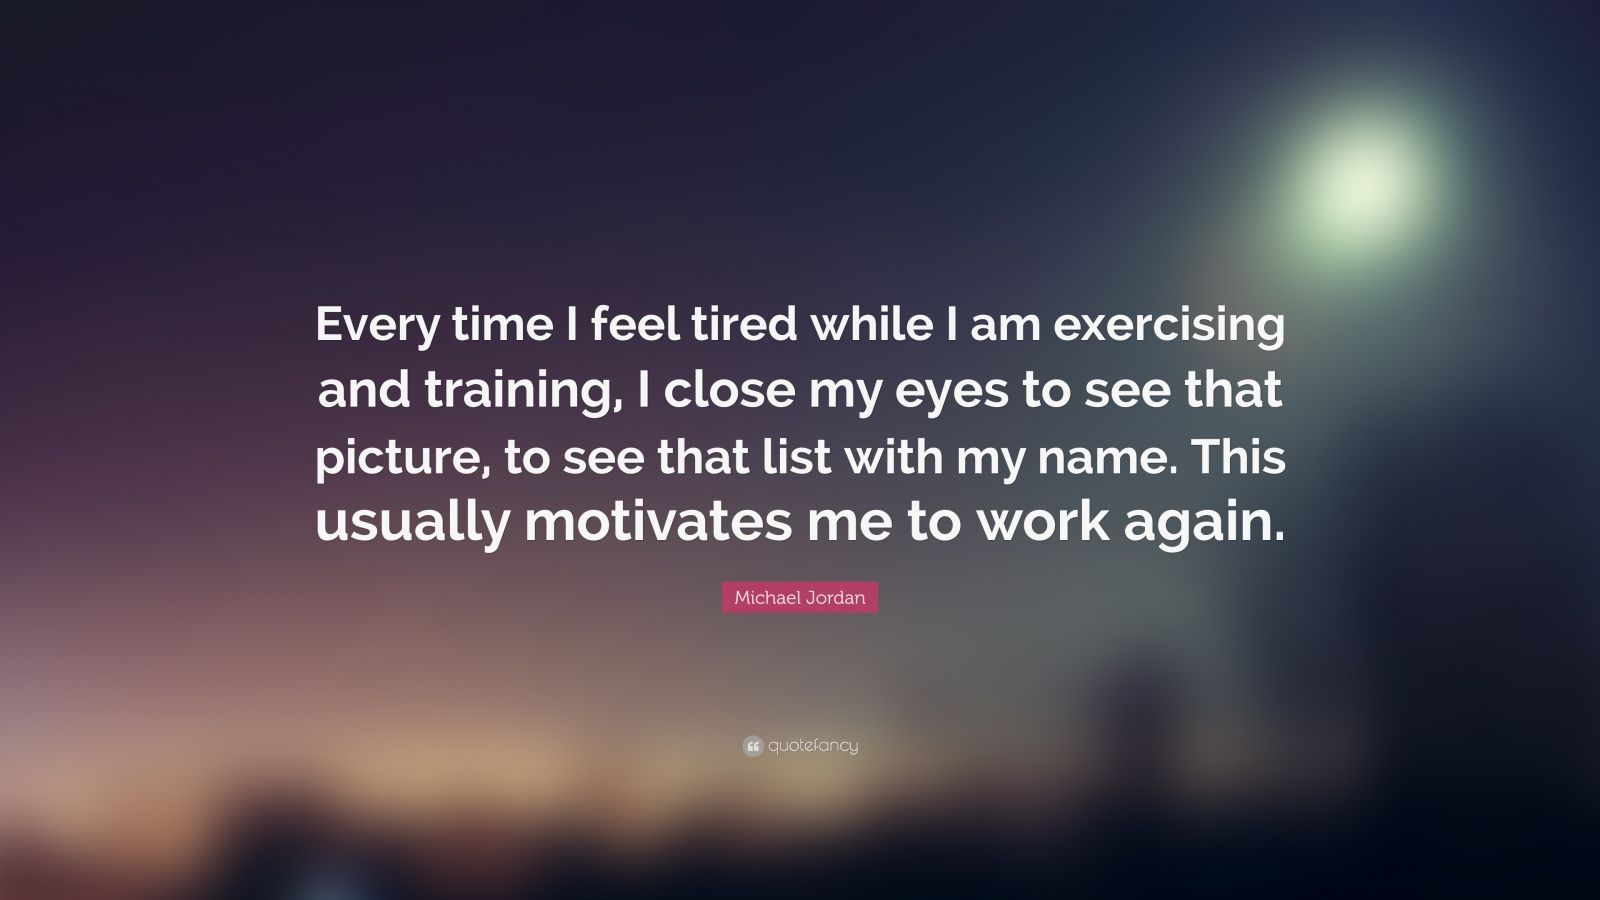 michael quotes quotefancy michael quote every time i feel tired while i am exercising and training